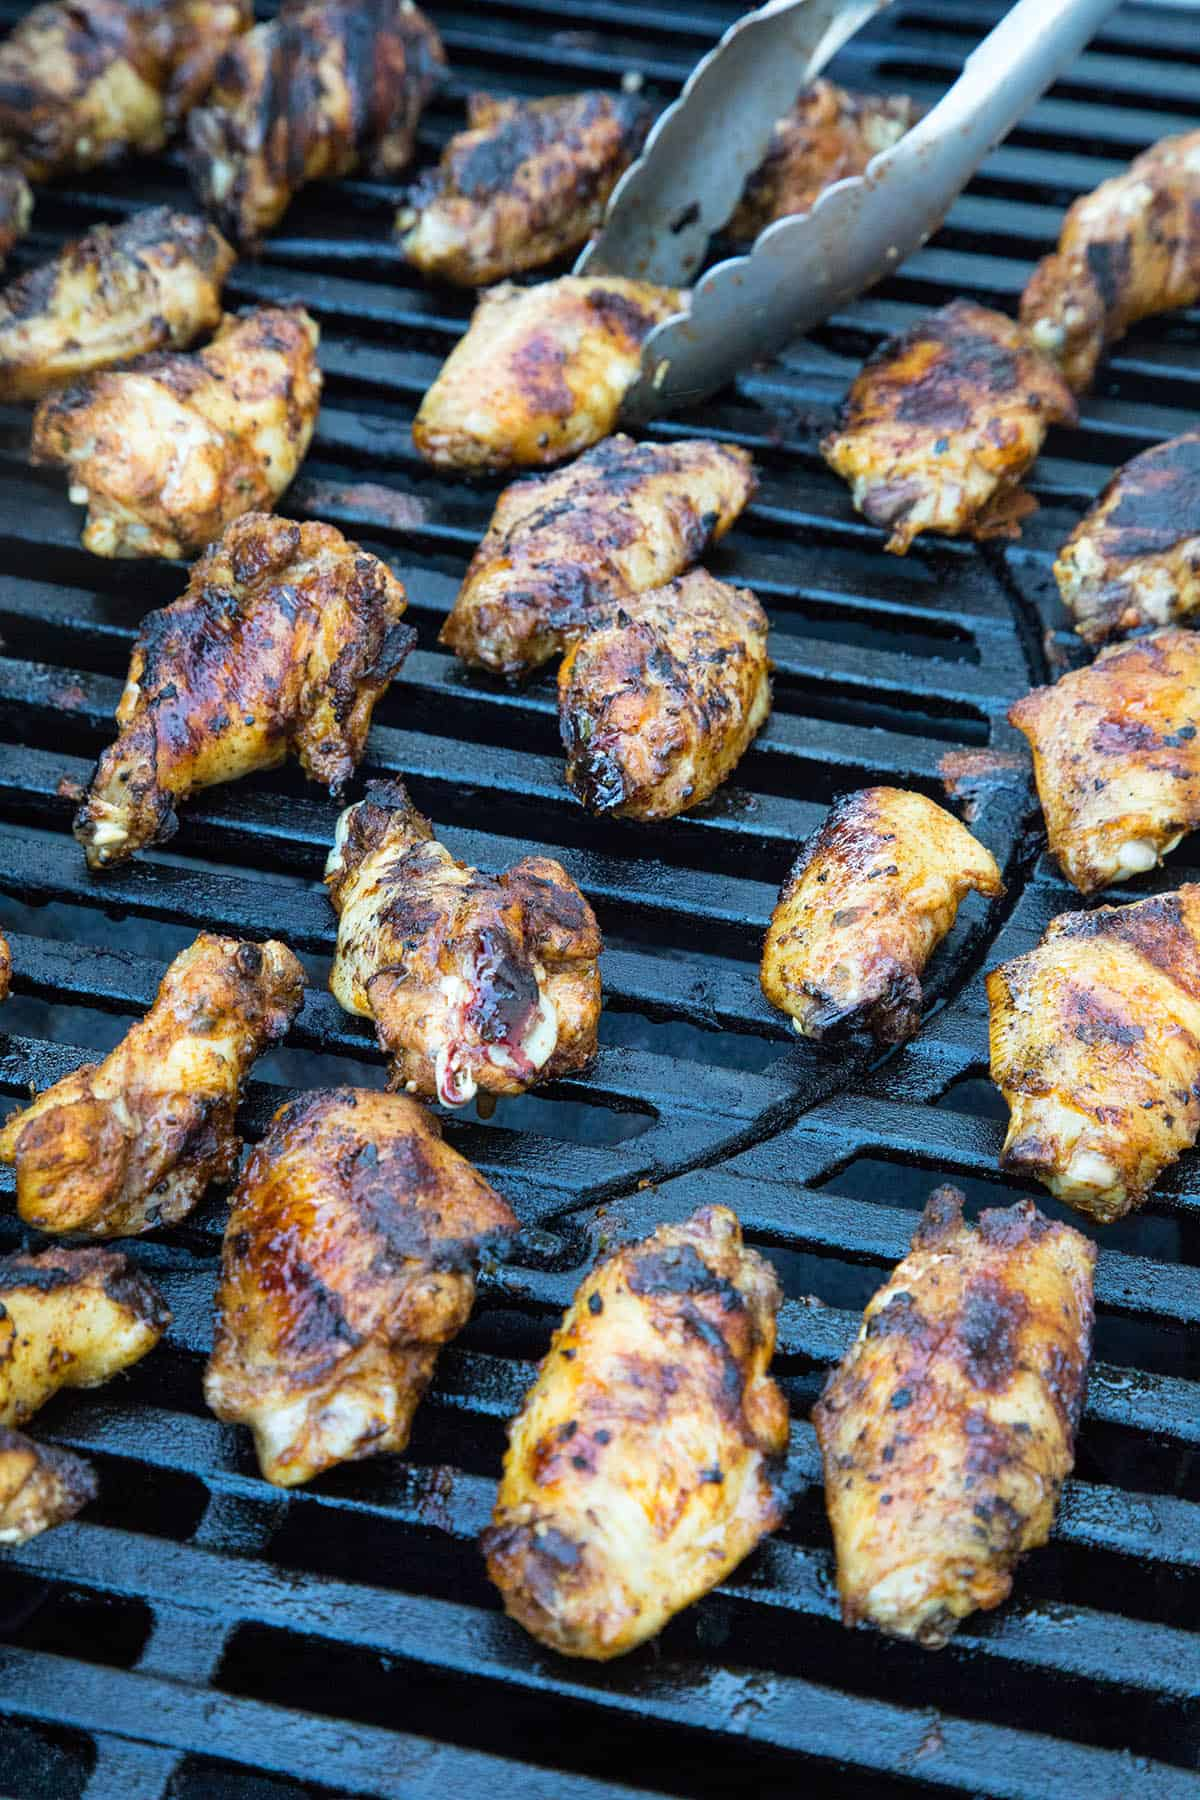 Grilling up the chicken wings